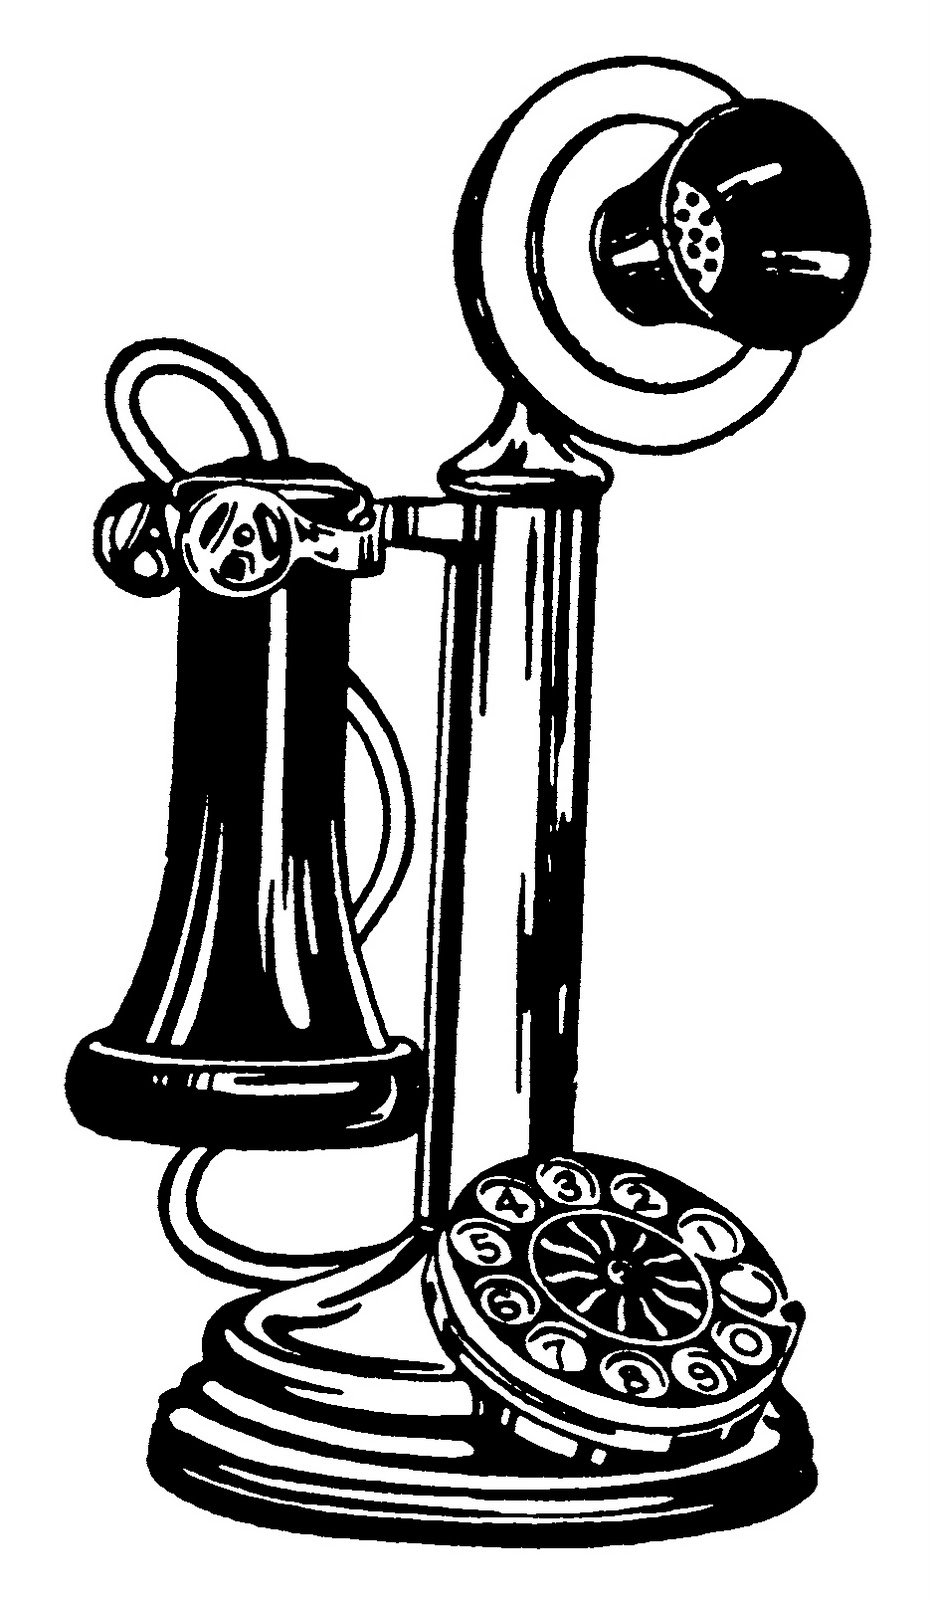 Telephone clipart vintage telephone Old vintage telephone old ×